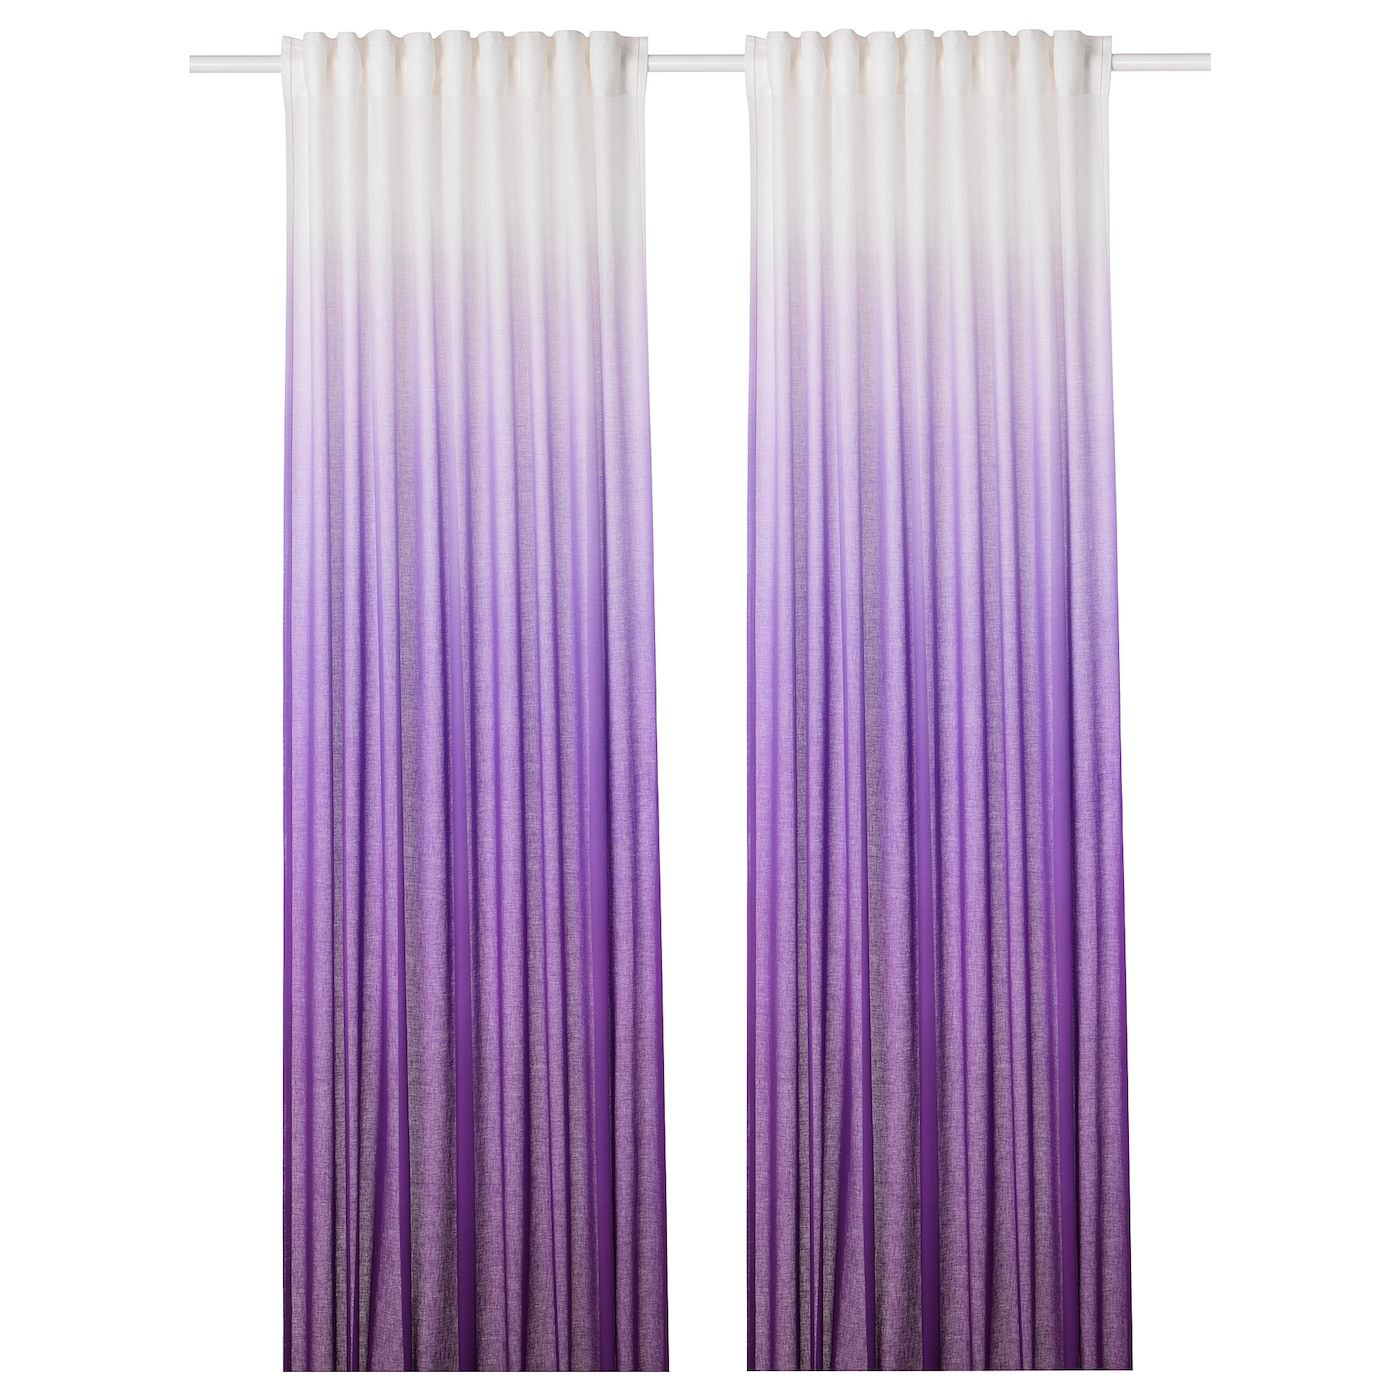 Ikea Strandtrift Curtains 1 Pair Lilac White Curtains With